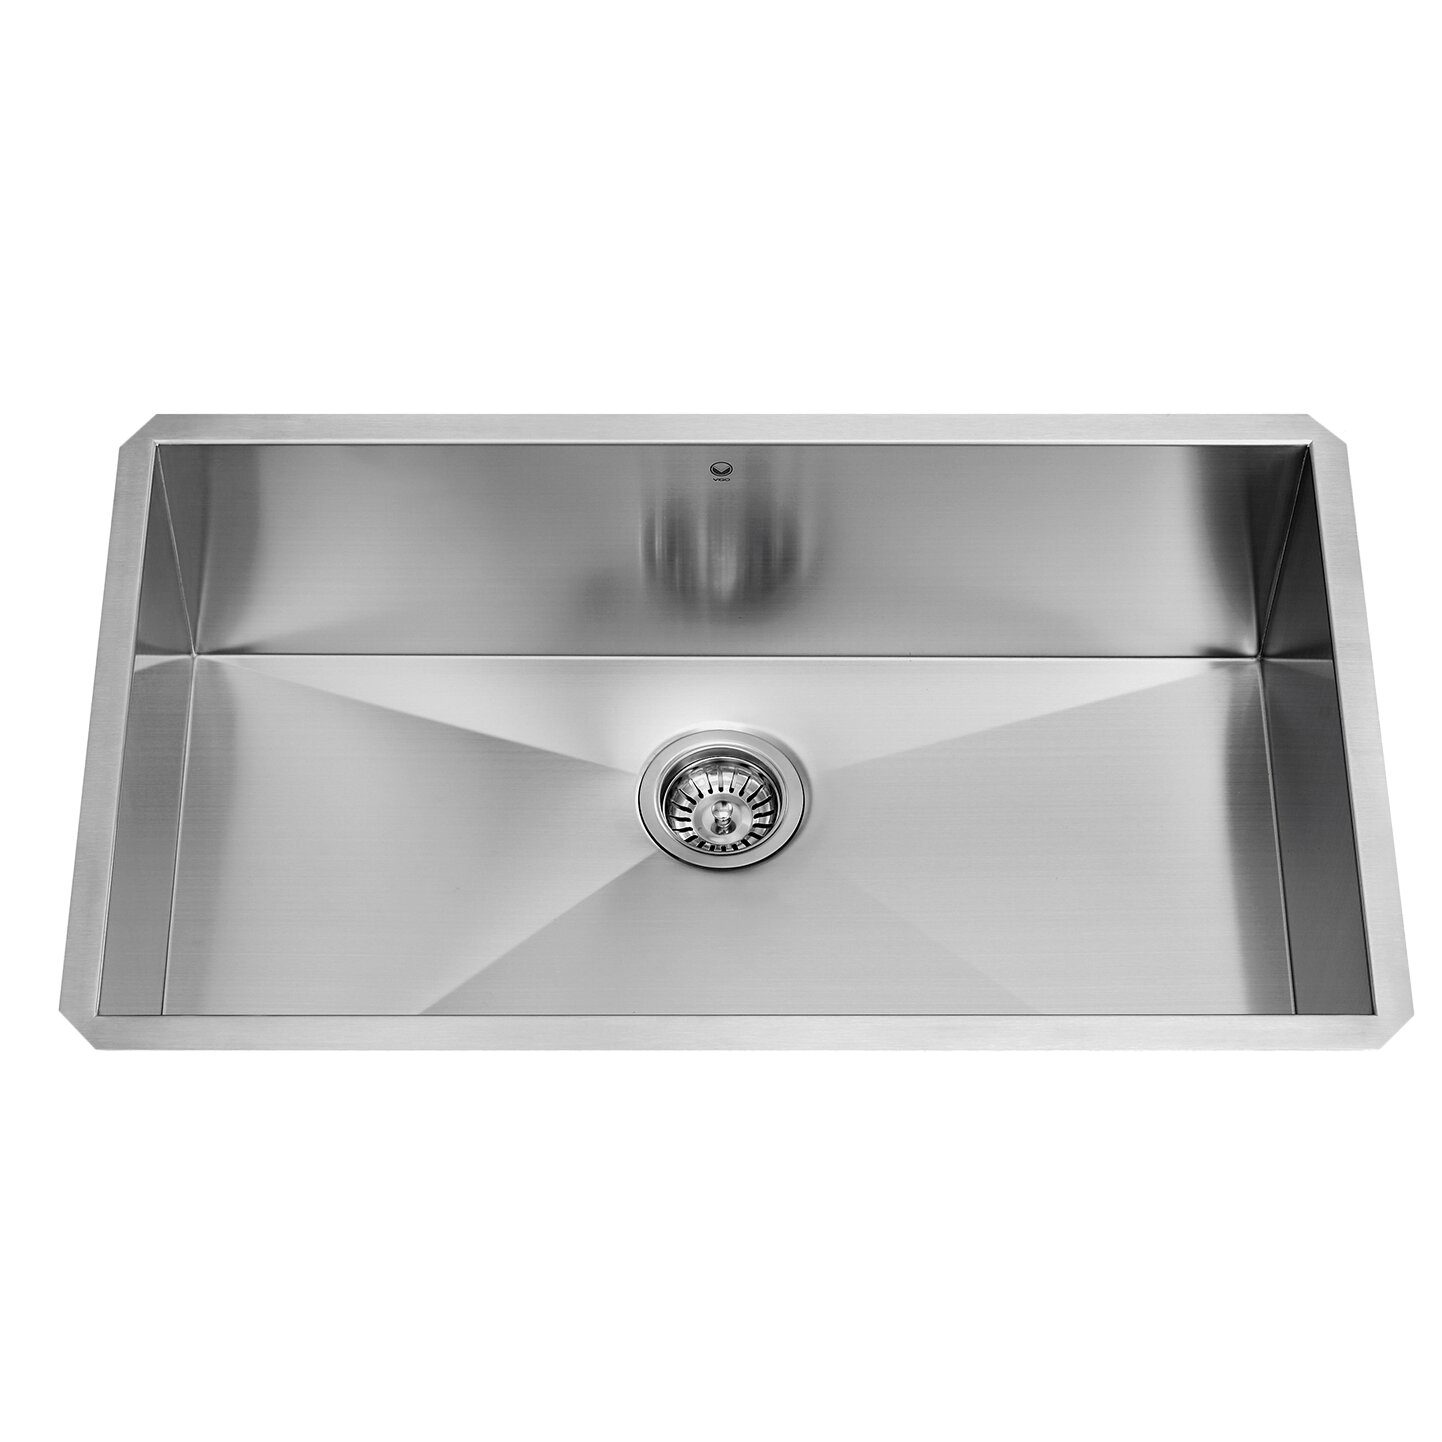 30 x 19 undermount single bowl 16 gauge stainless steel kitchen sink - Stainless Steel Kitchen Sink Gauge